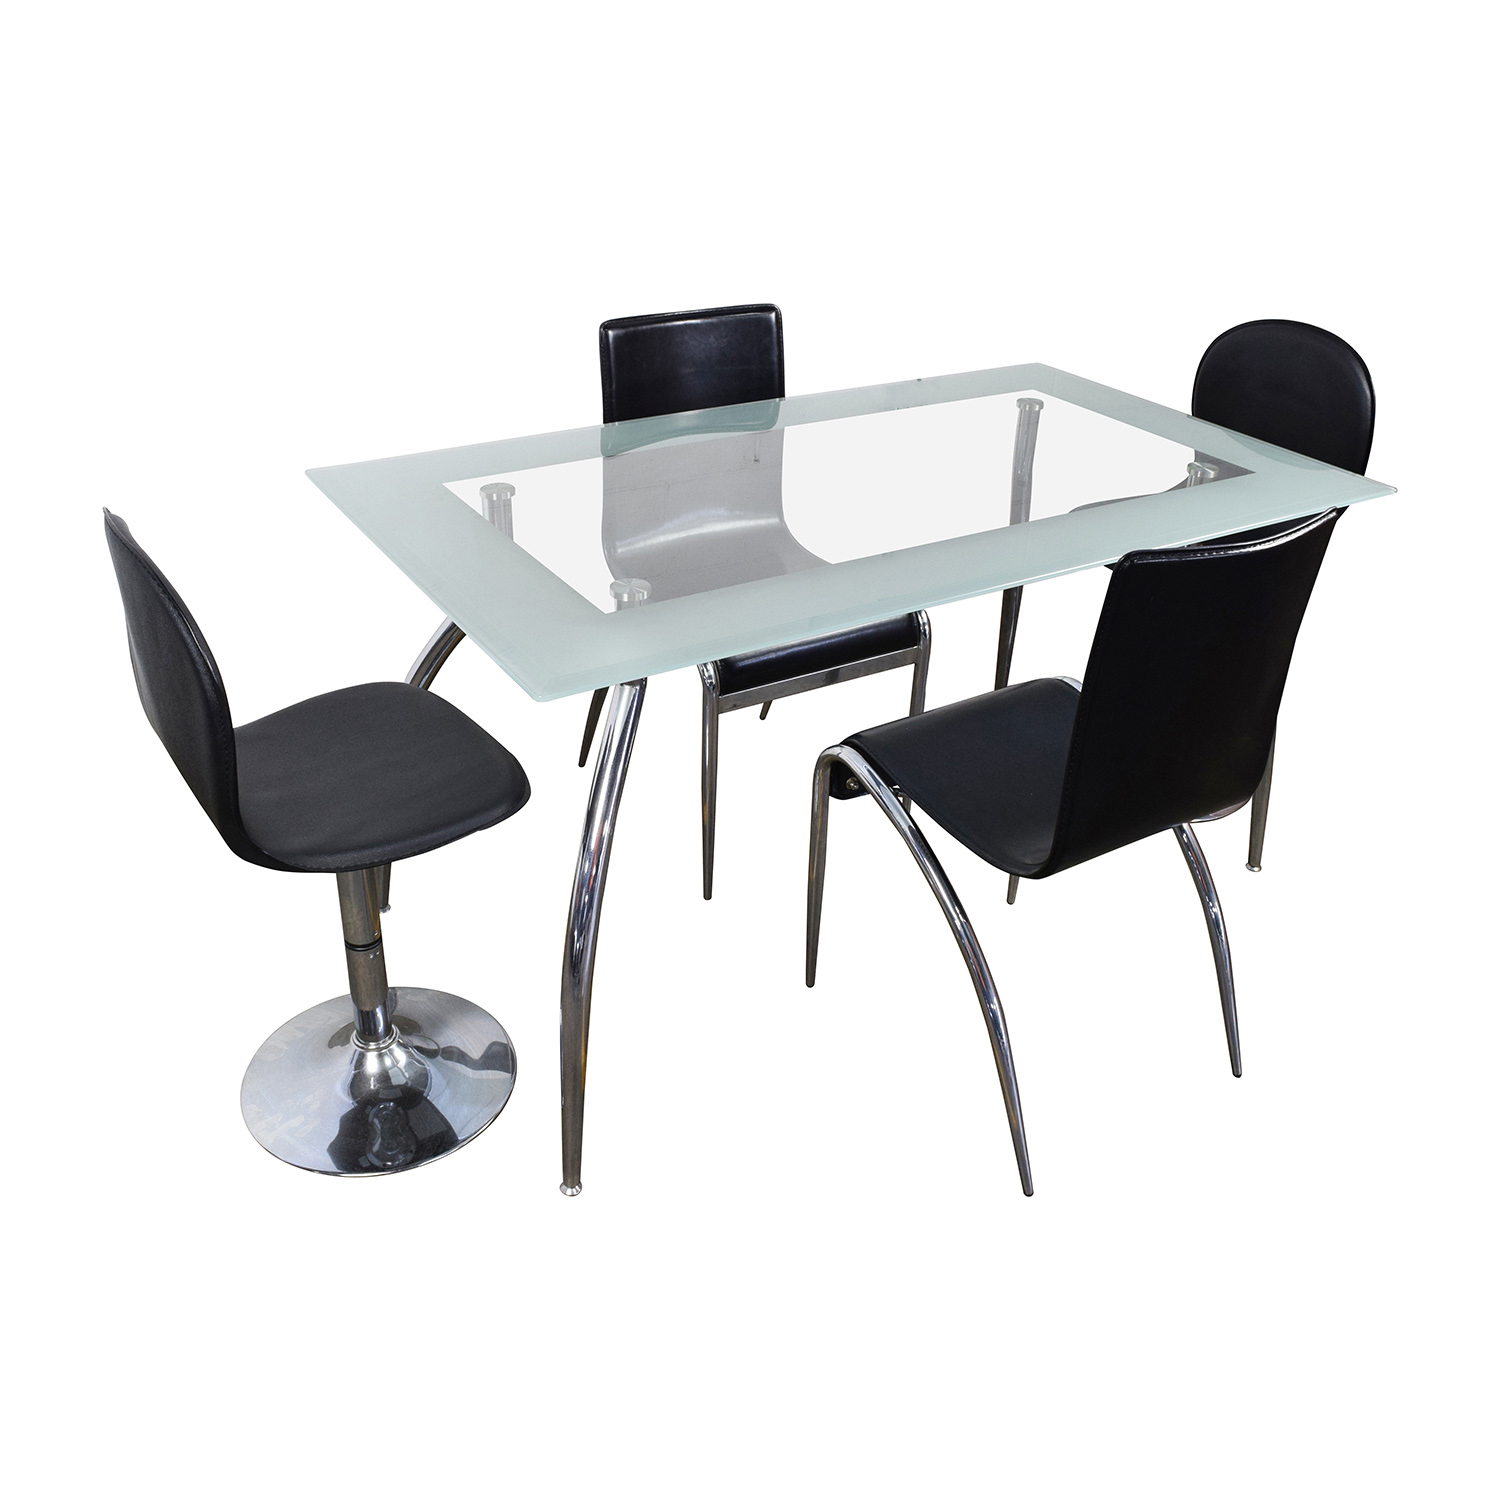 shop The Door Store Rectangular Glass Table with Four Leather Chairs The door store